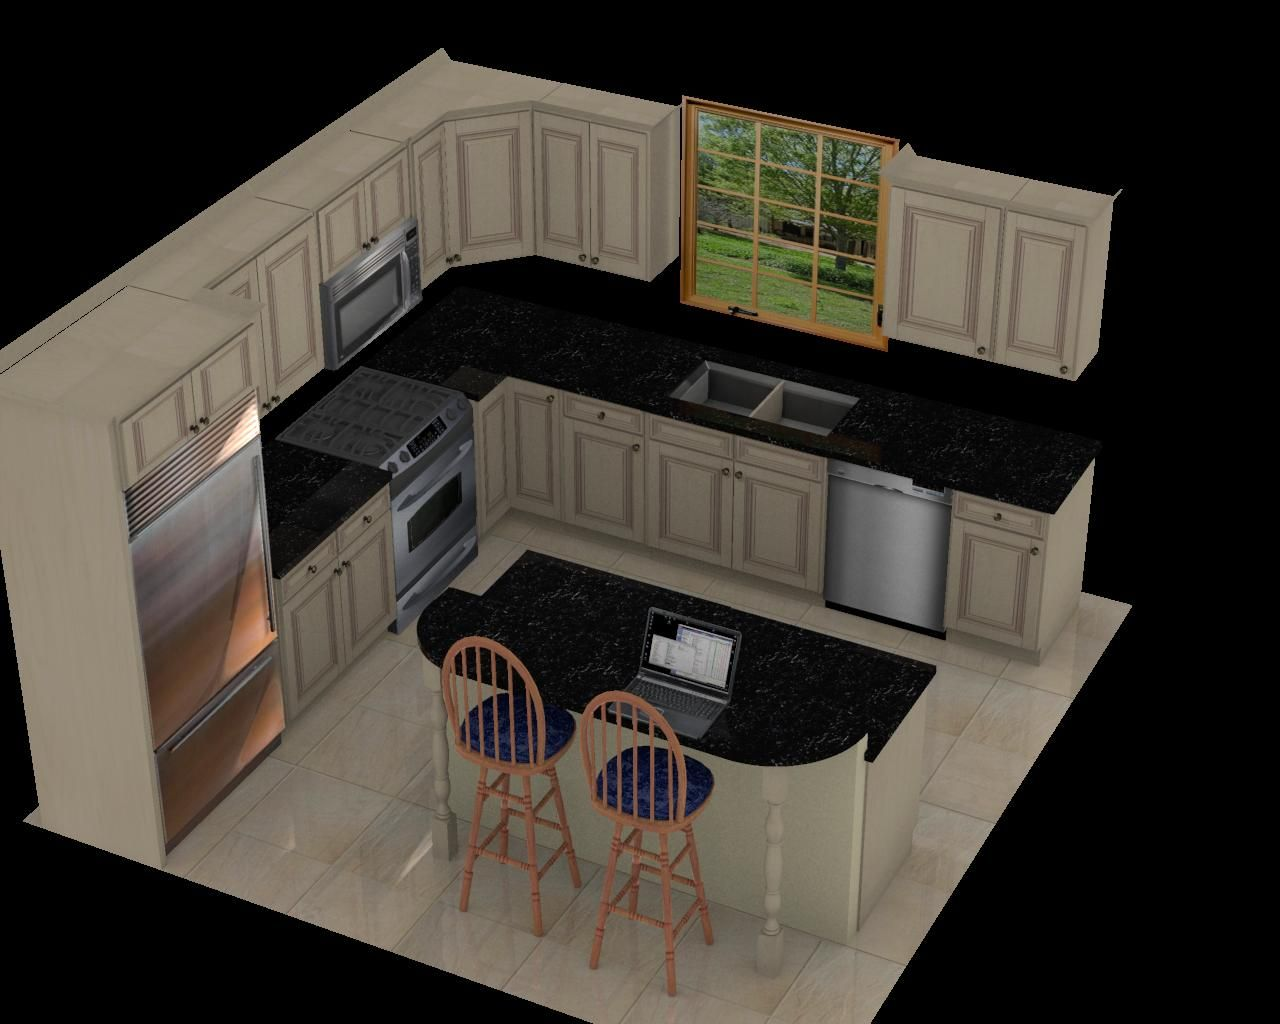 Kitchen Floor Plans For Small Kitchens Luxury 12x12 Kitchen Layout With Island 51 For With 12x12